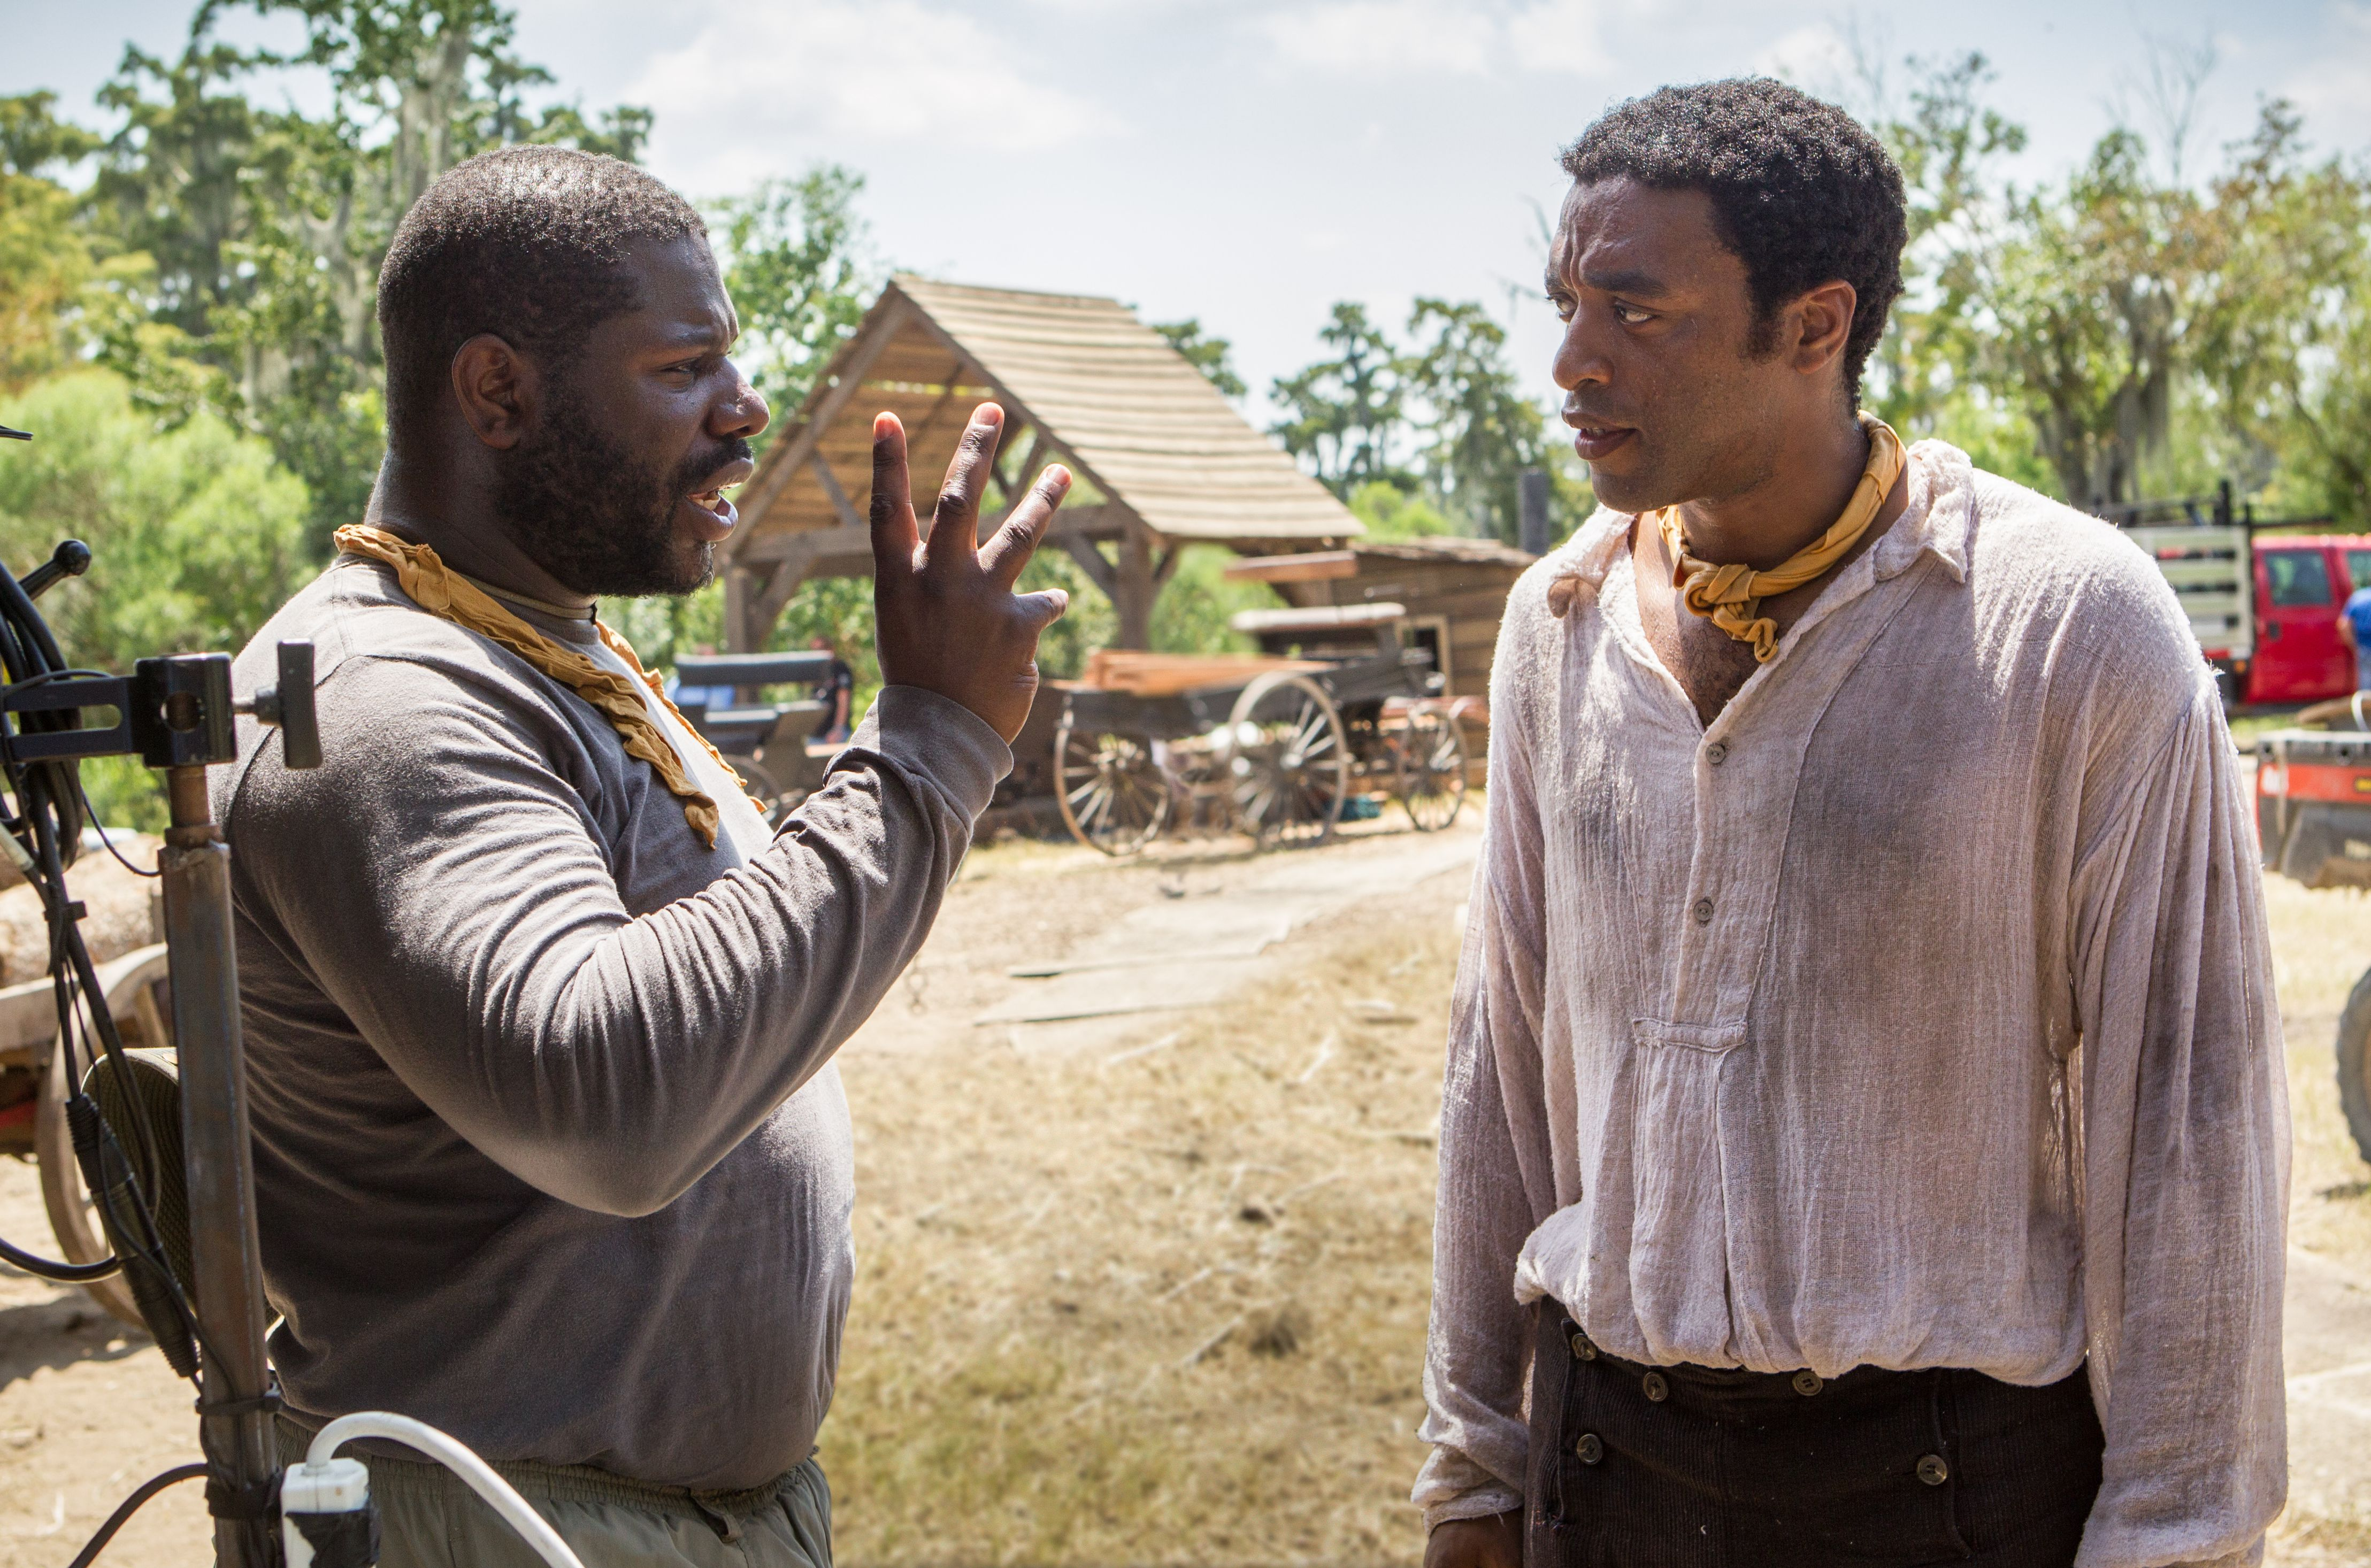 Director Steve McQueen and Chiwetel Ejiofor discuss a scene